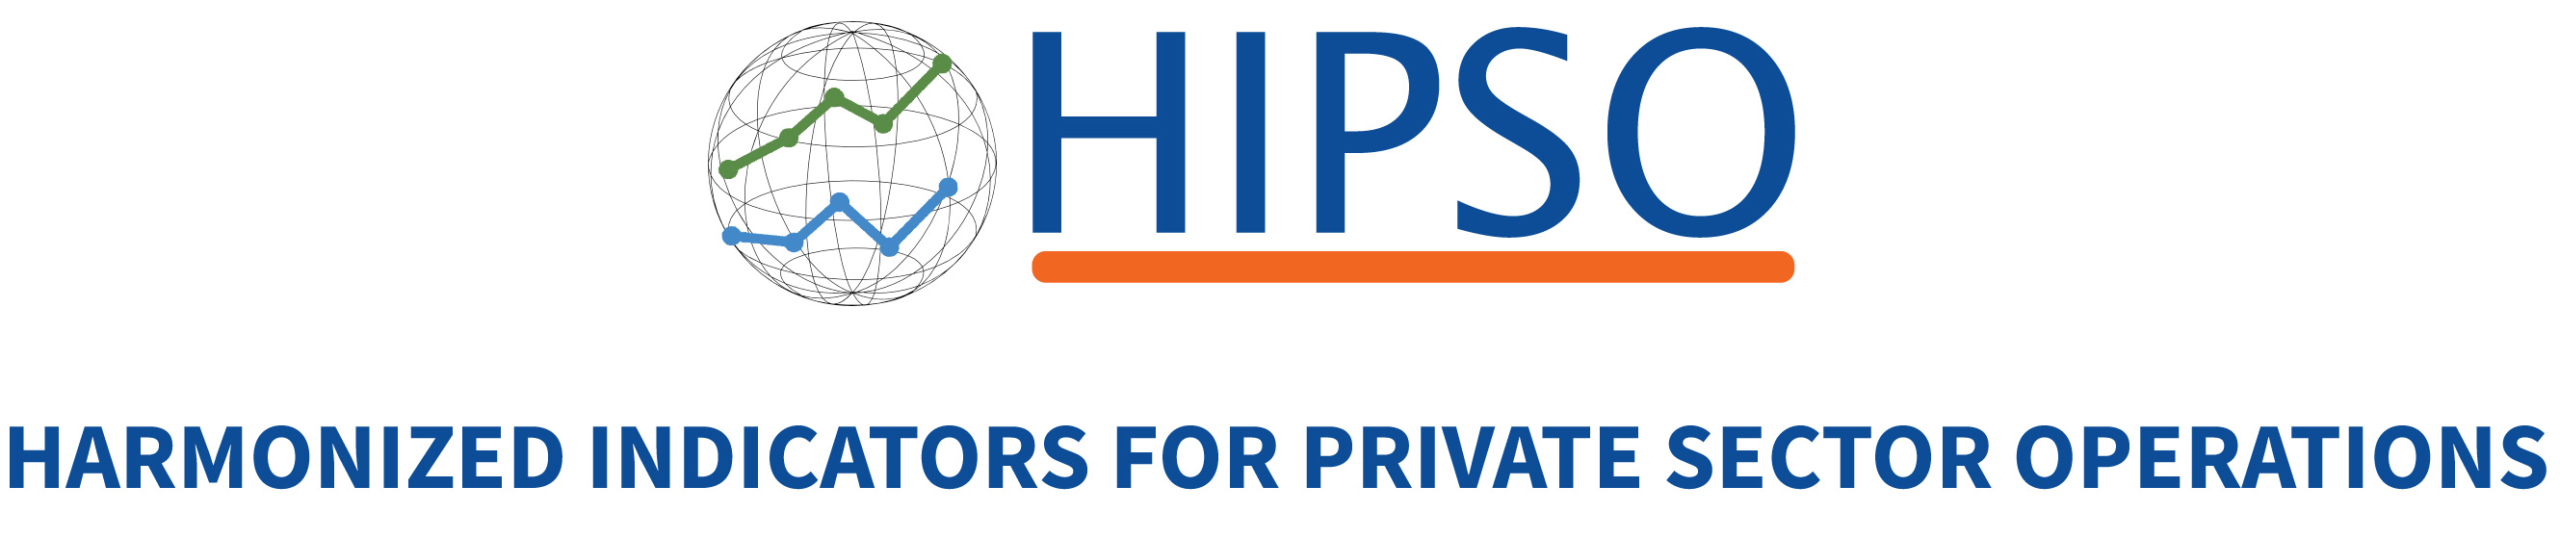 Harmonized Indicators for Private Sector Operations (HIPSO)